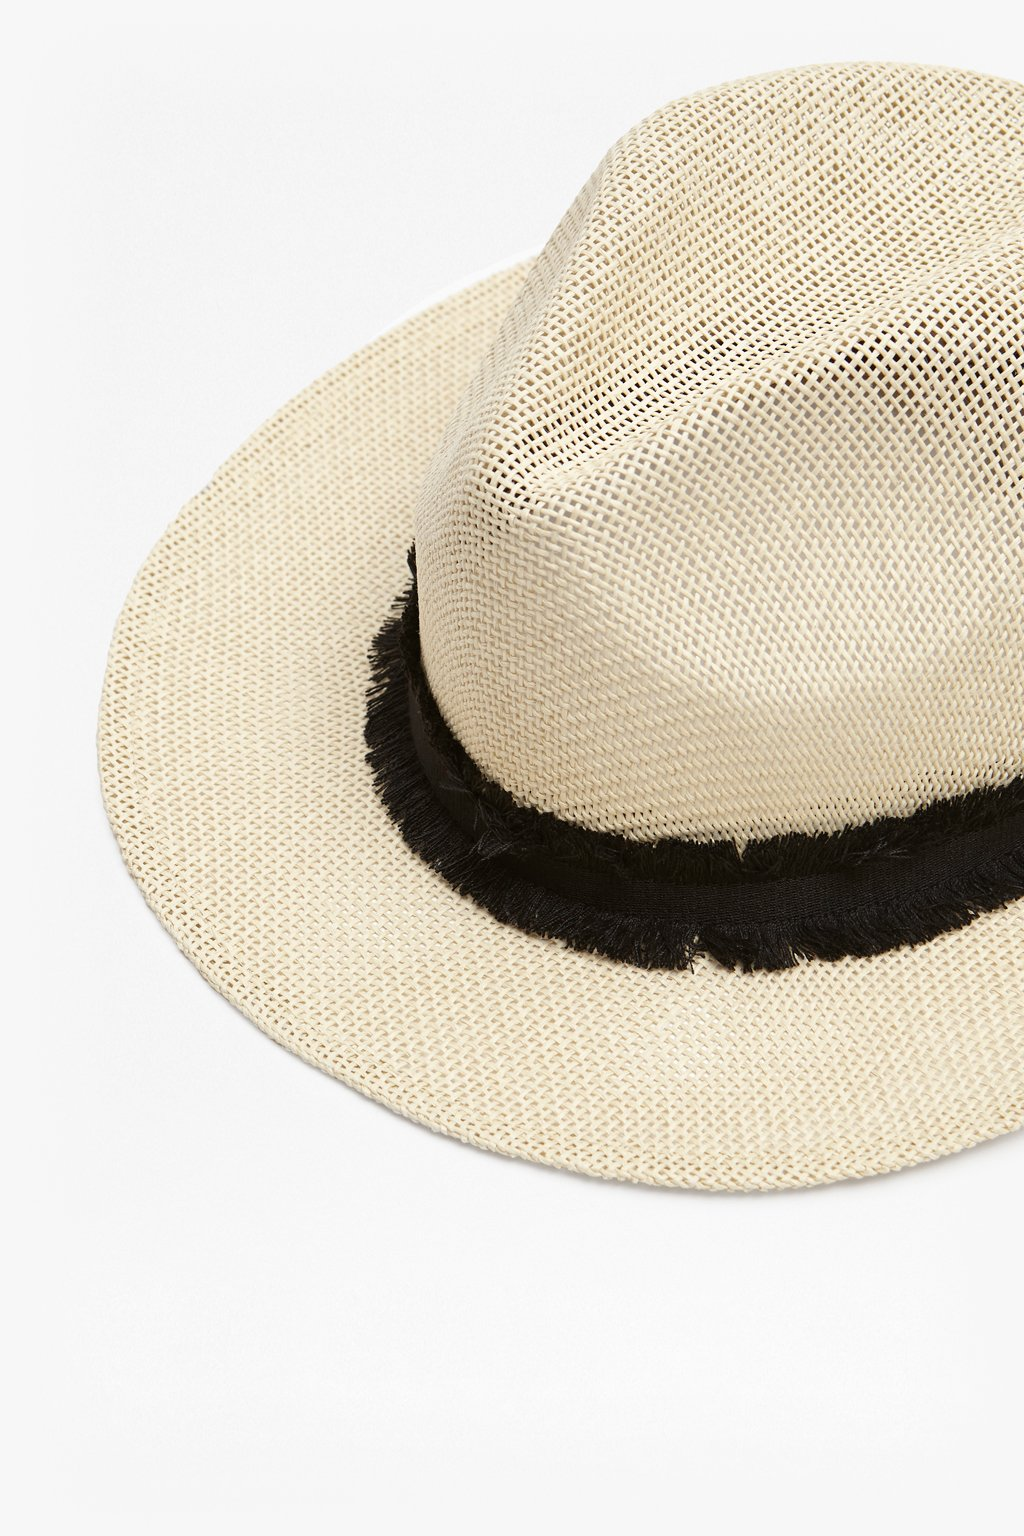 48514377dcb4f Connection black French With Band Trilby Cream Straw Beach Hat Detail wqzvvT